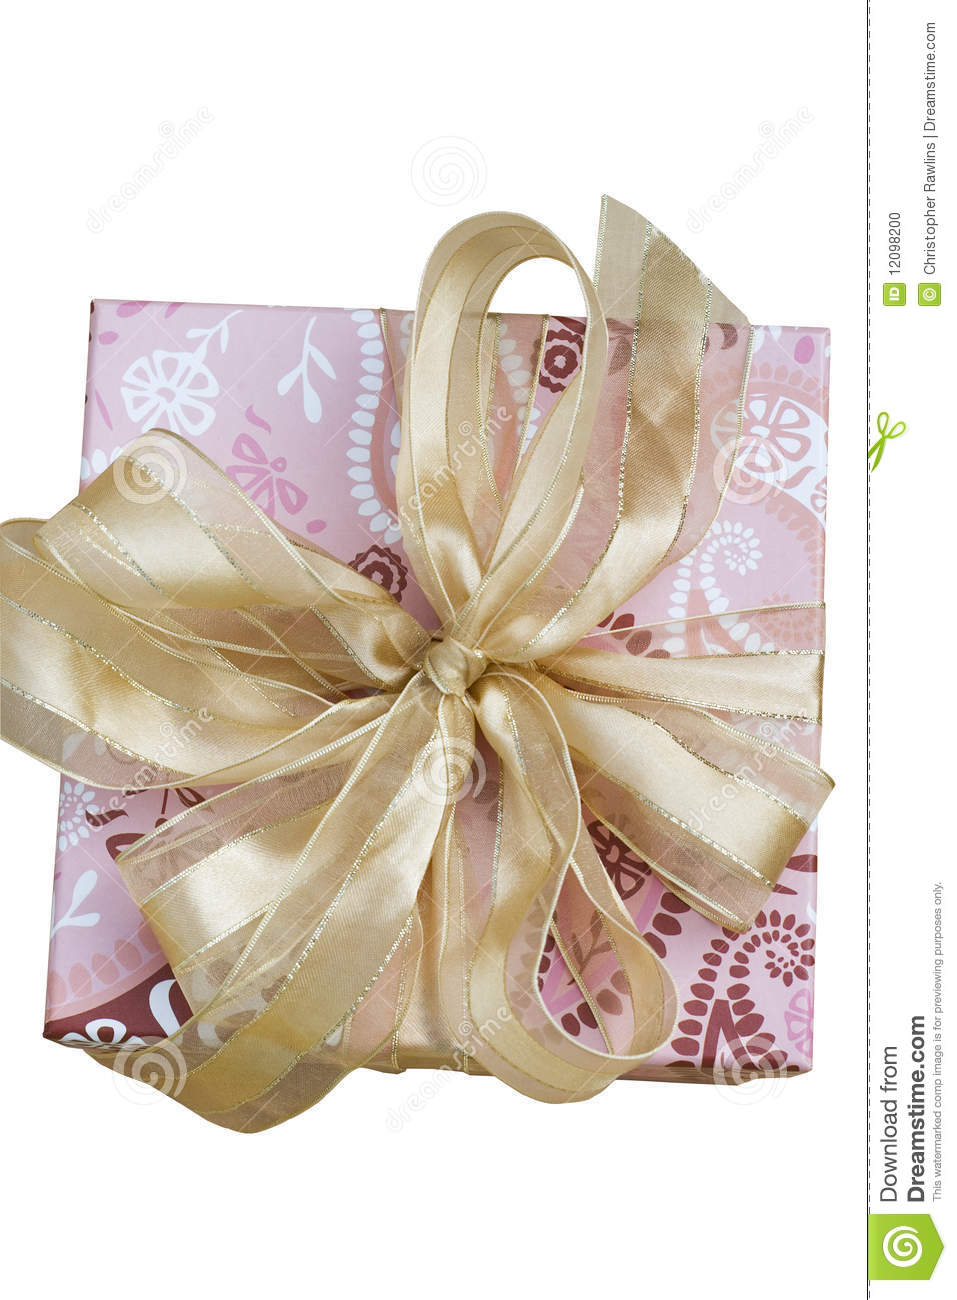 A Gift or Present on white background